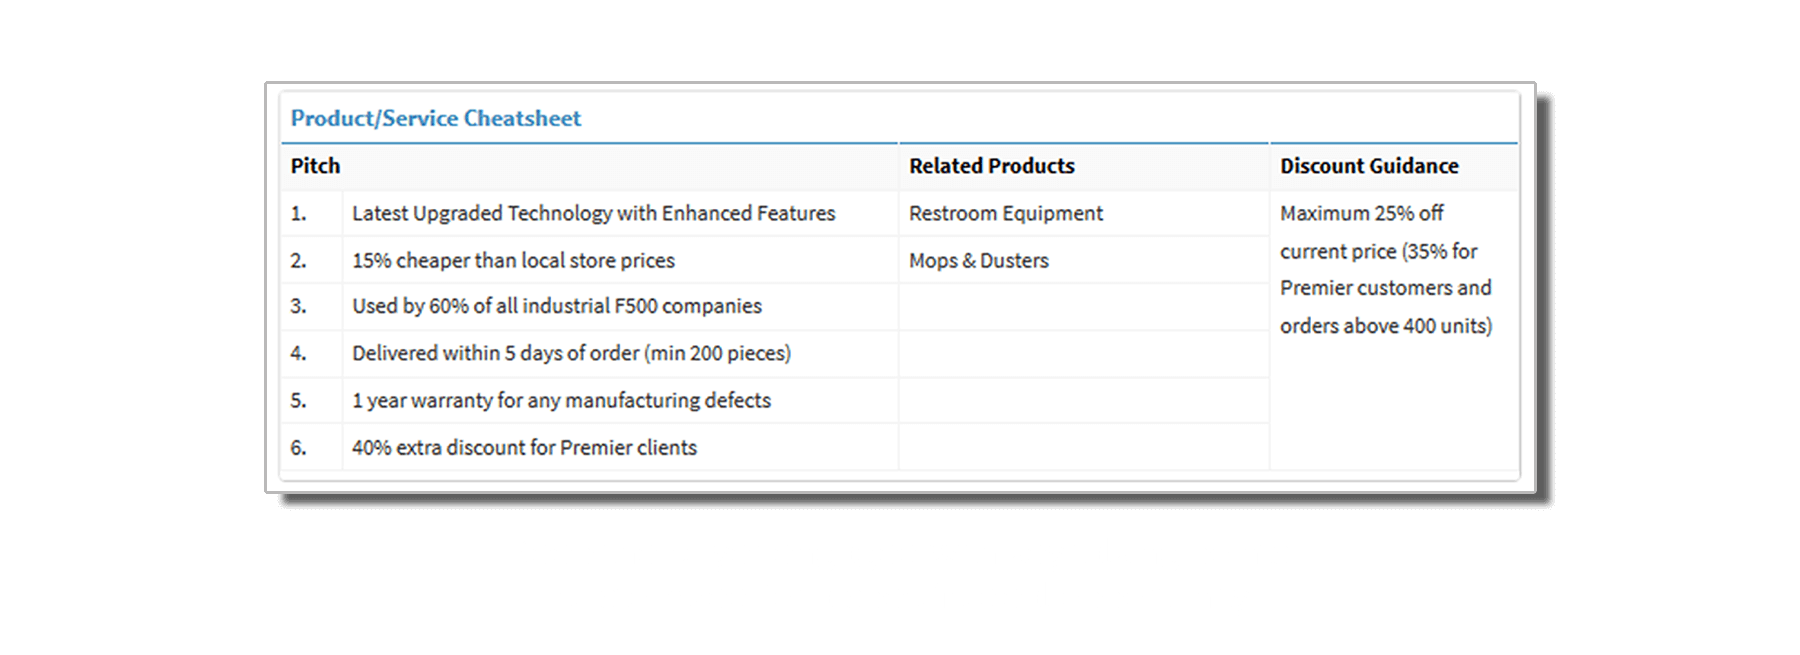 NAVIK SalesAI is AI software for sales that keeps the buyer engaged with key talking points customized for a specific deal opportunity